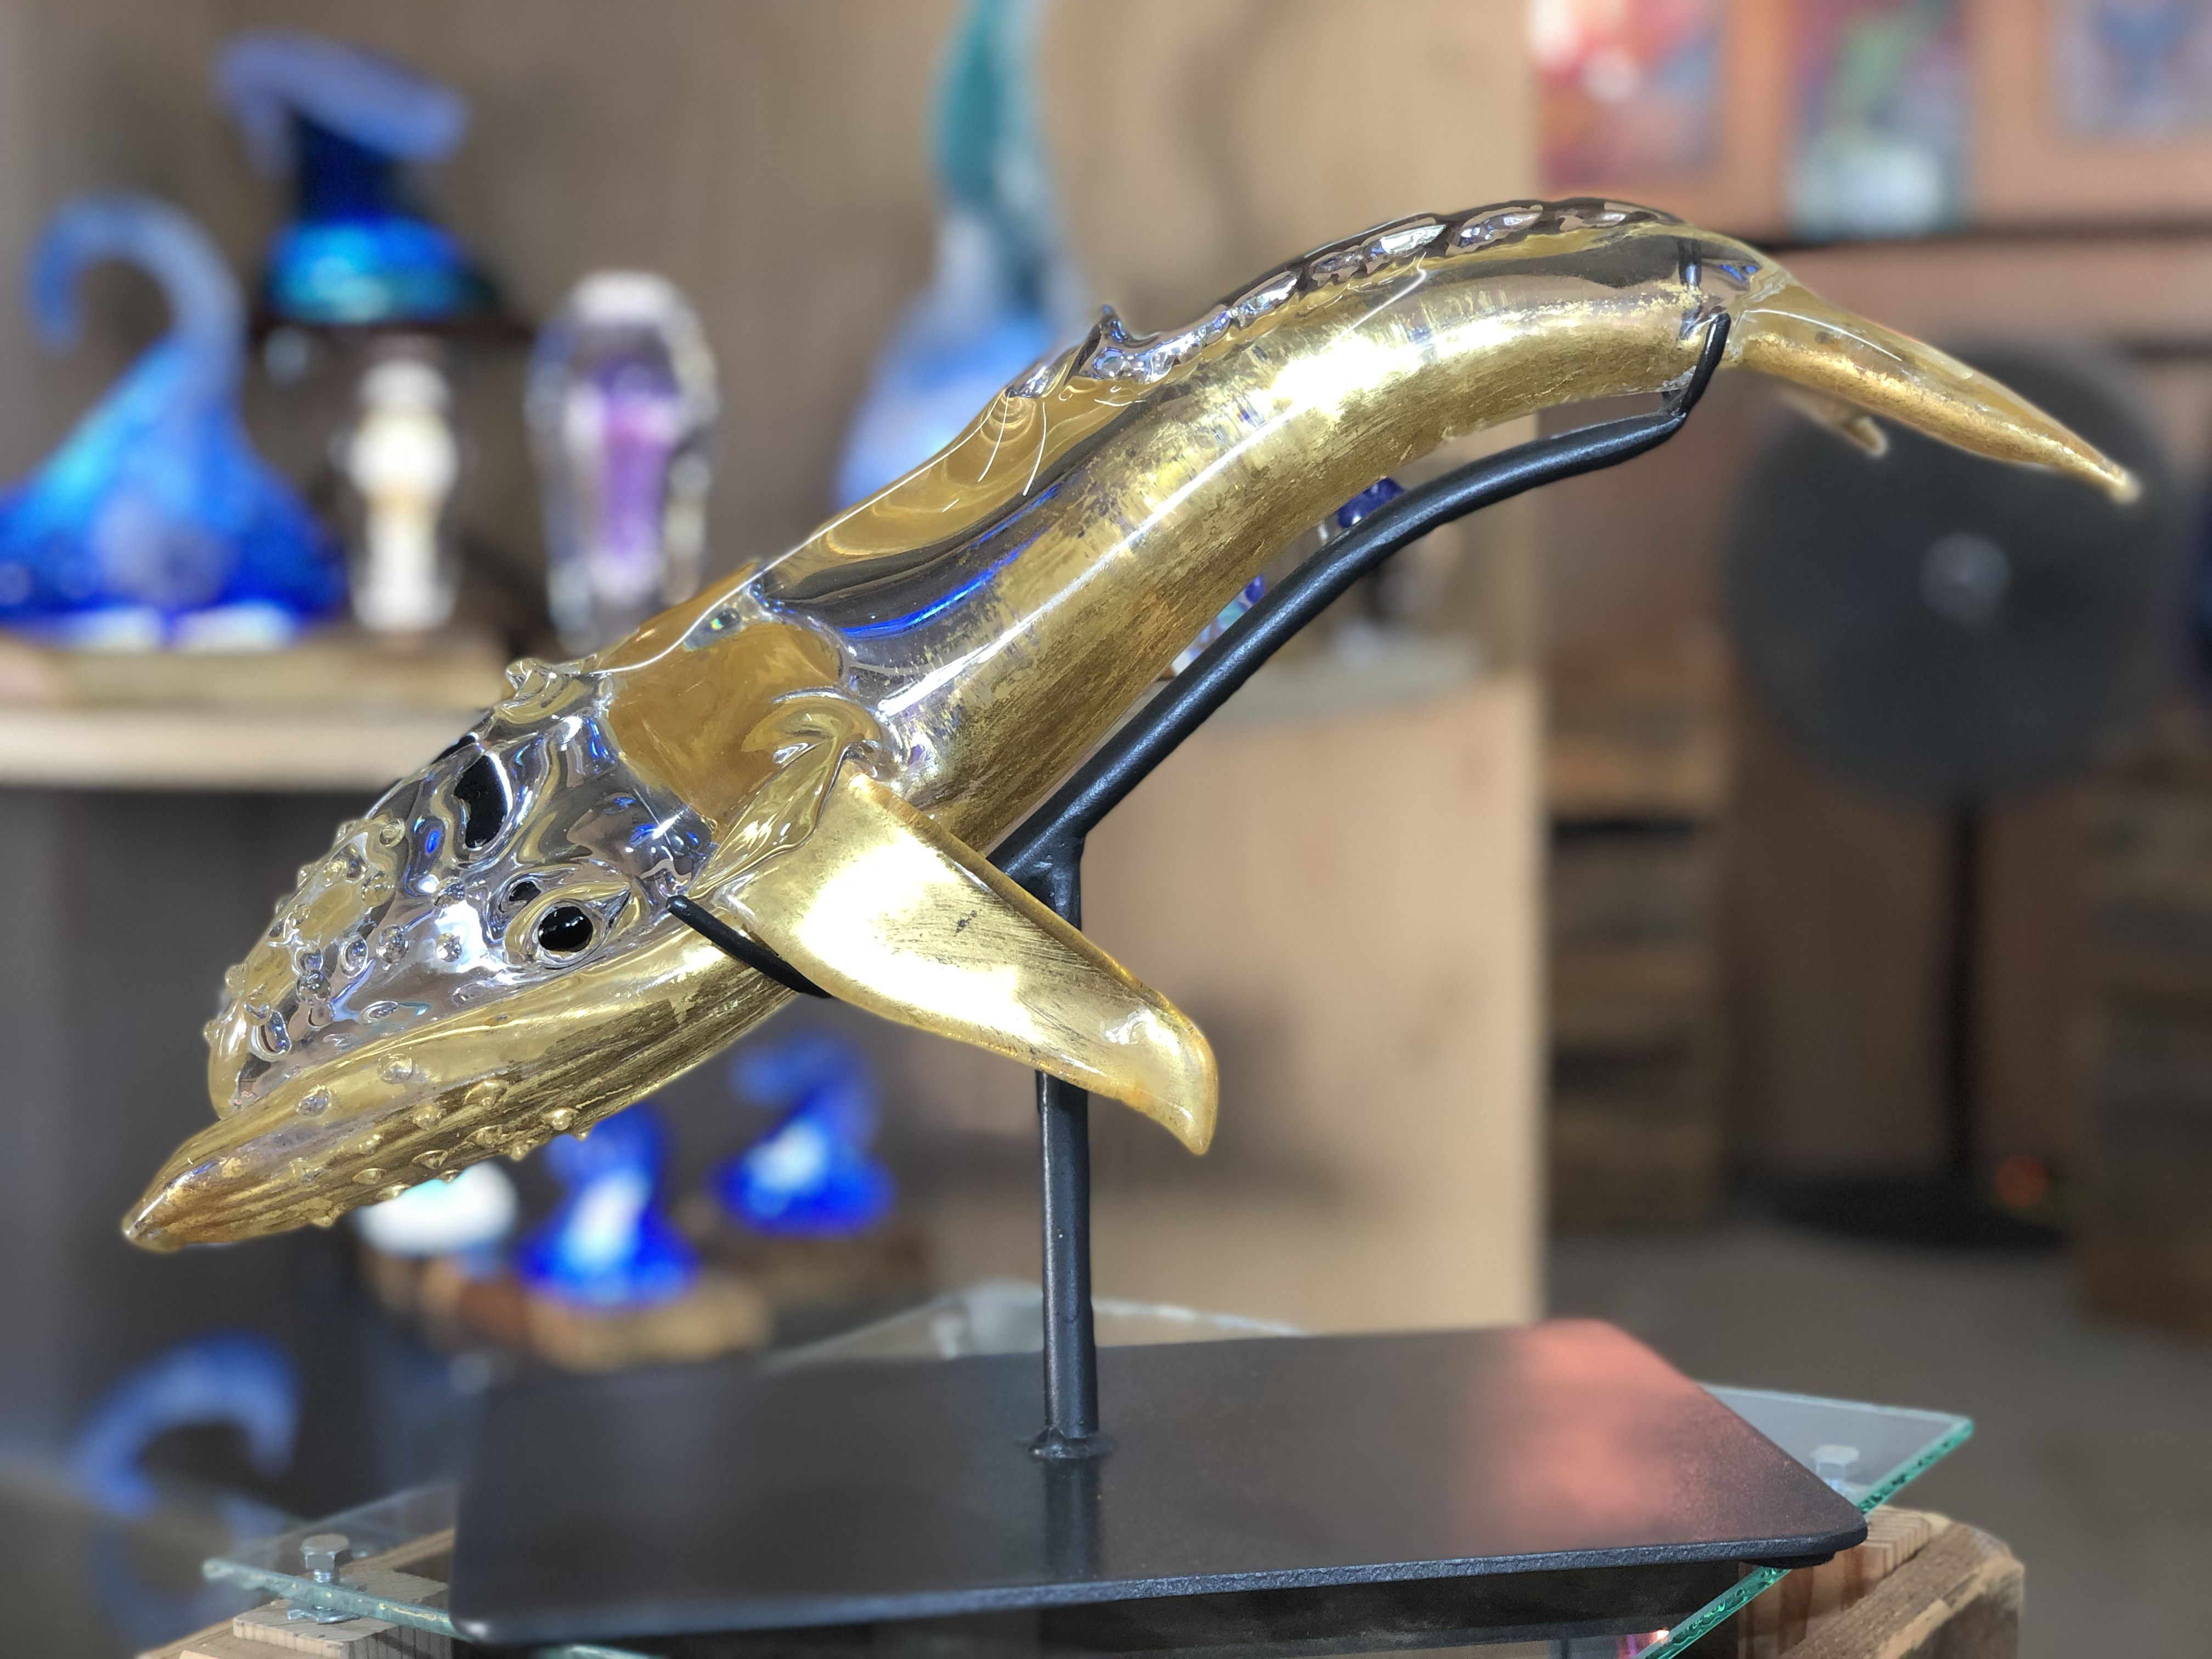 24 karat gold plated whale glass blowing